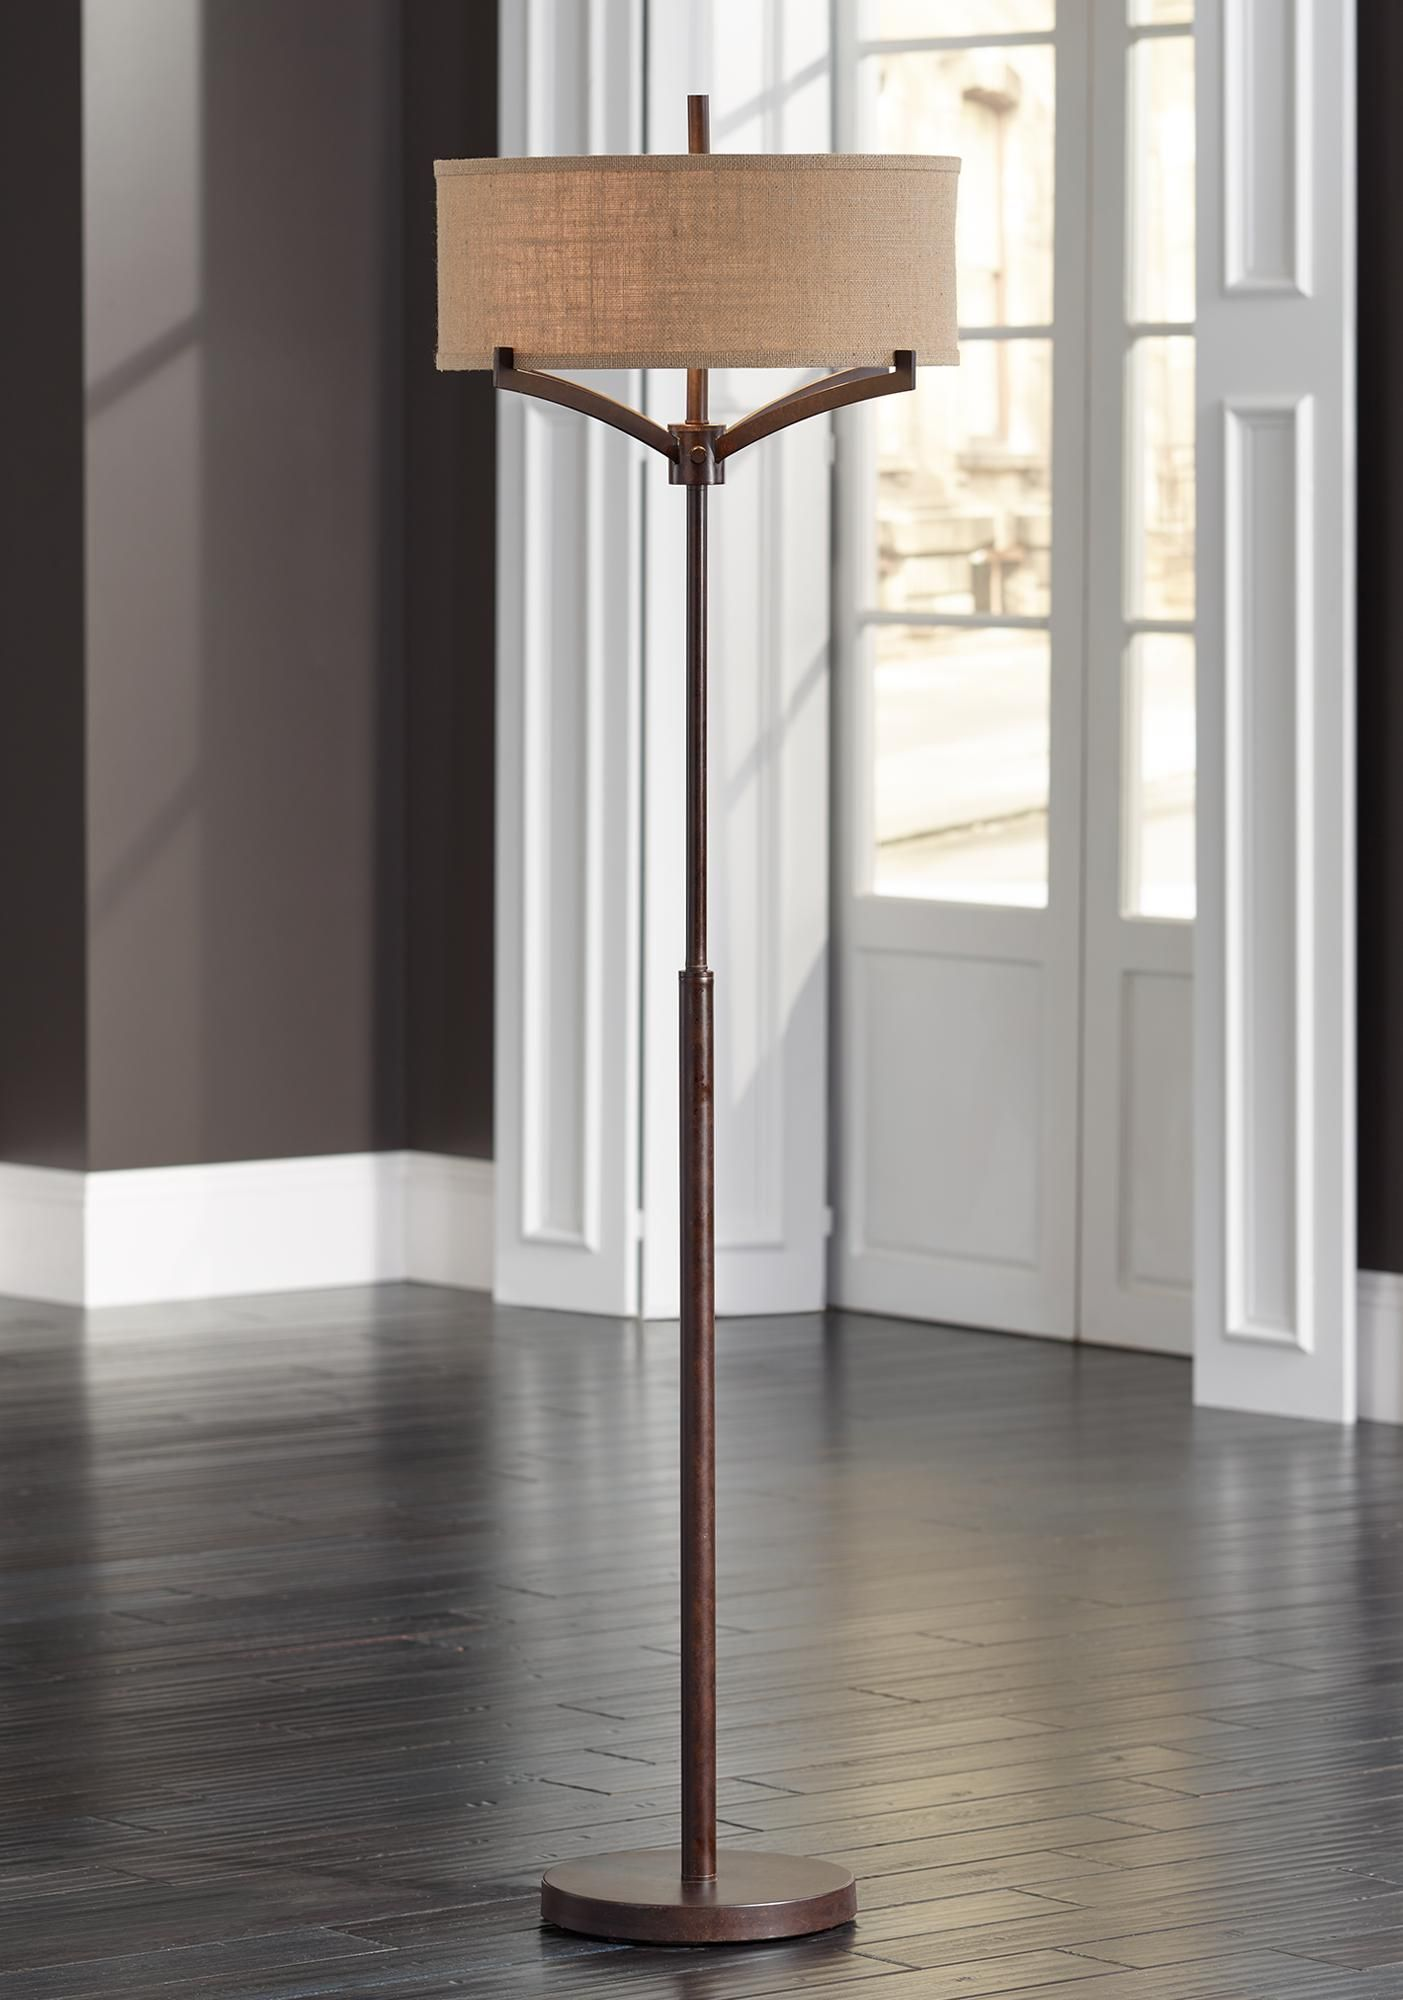 Franklin Iron Works™ Tremont Floor Lamp With Burlap Shade